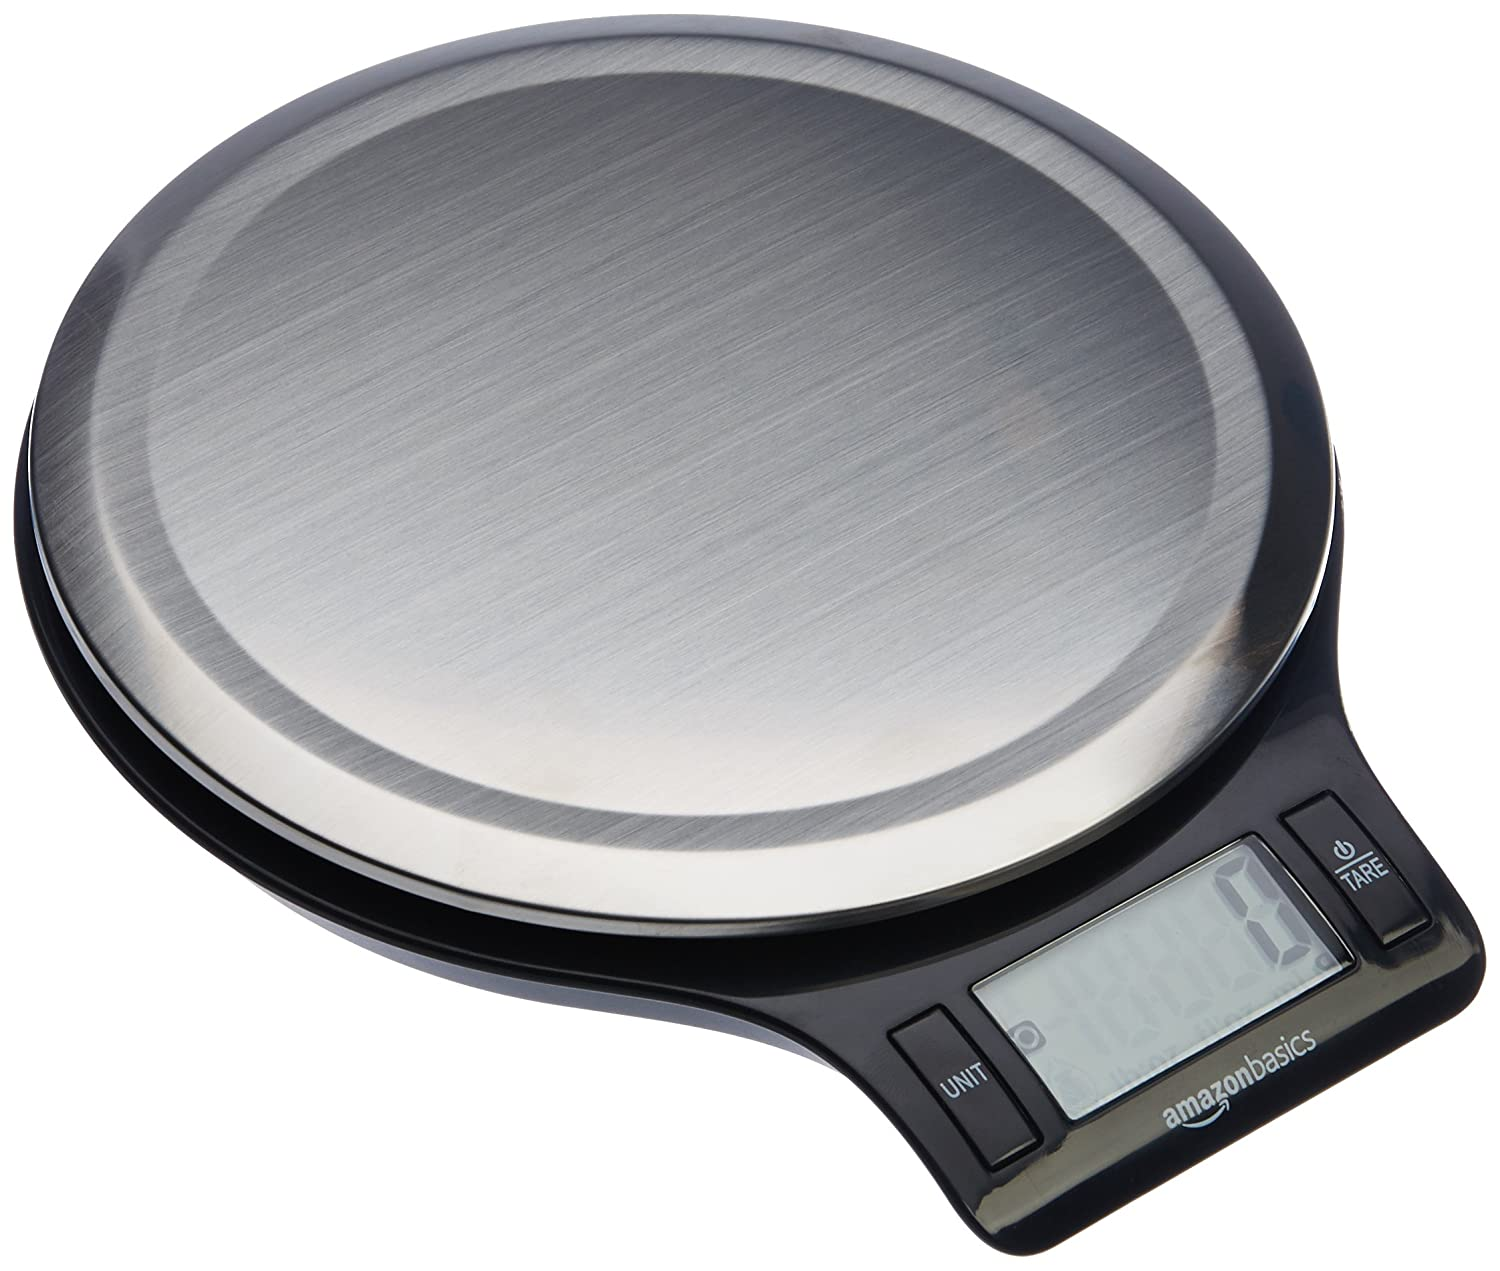 AmazonBasics Stainless Steel Digital Kitchen Scale with LCD Display (Batteries Included) EK3211